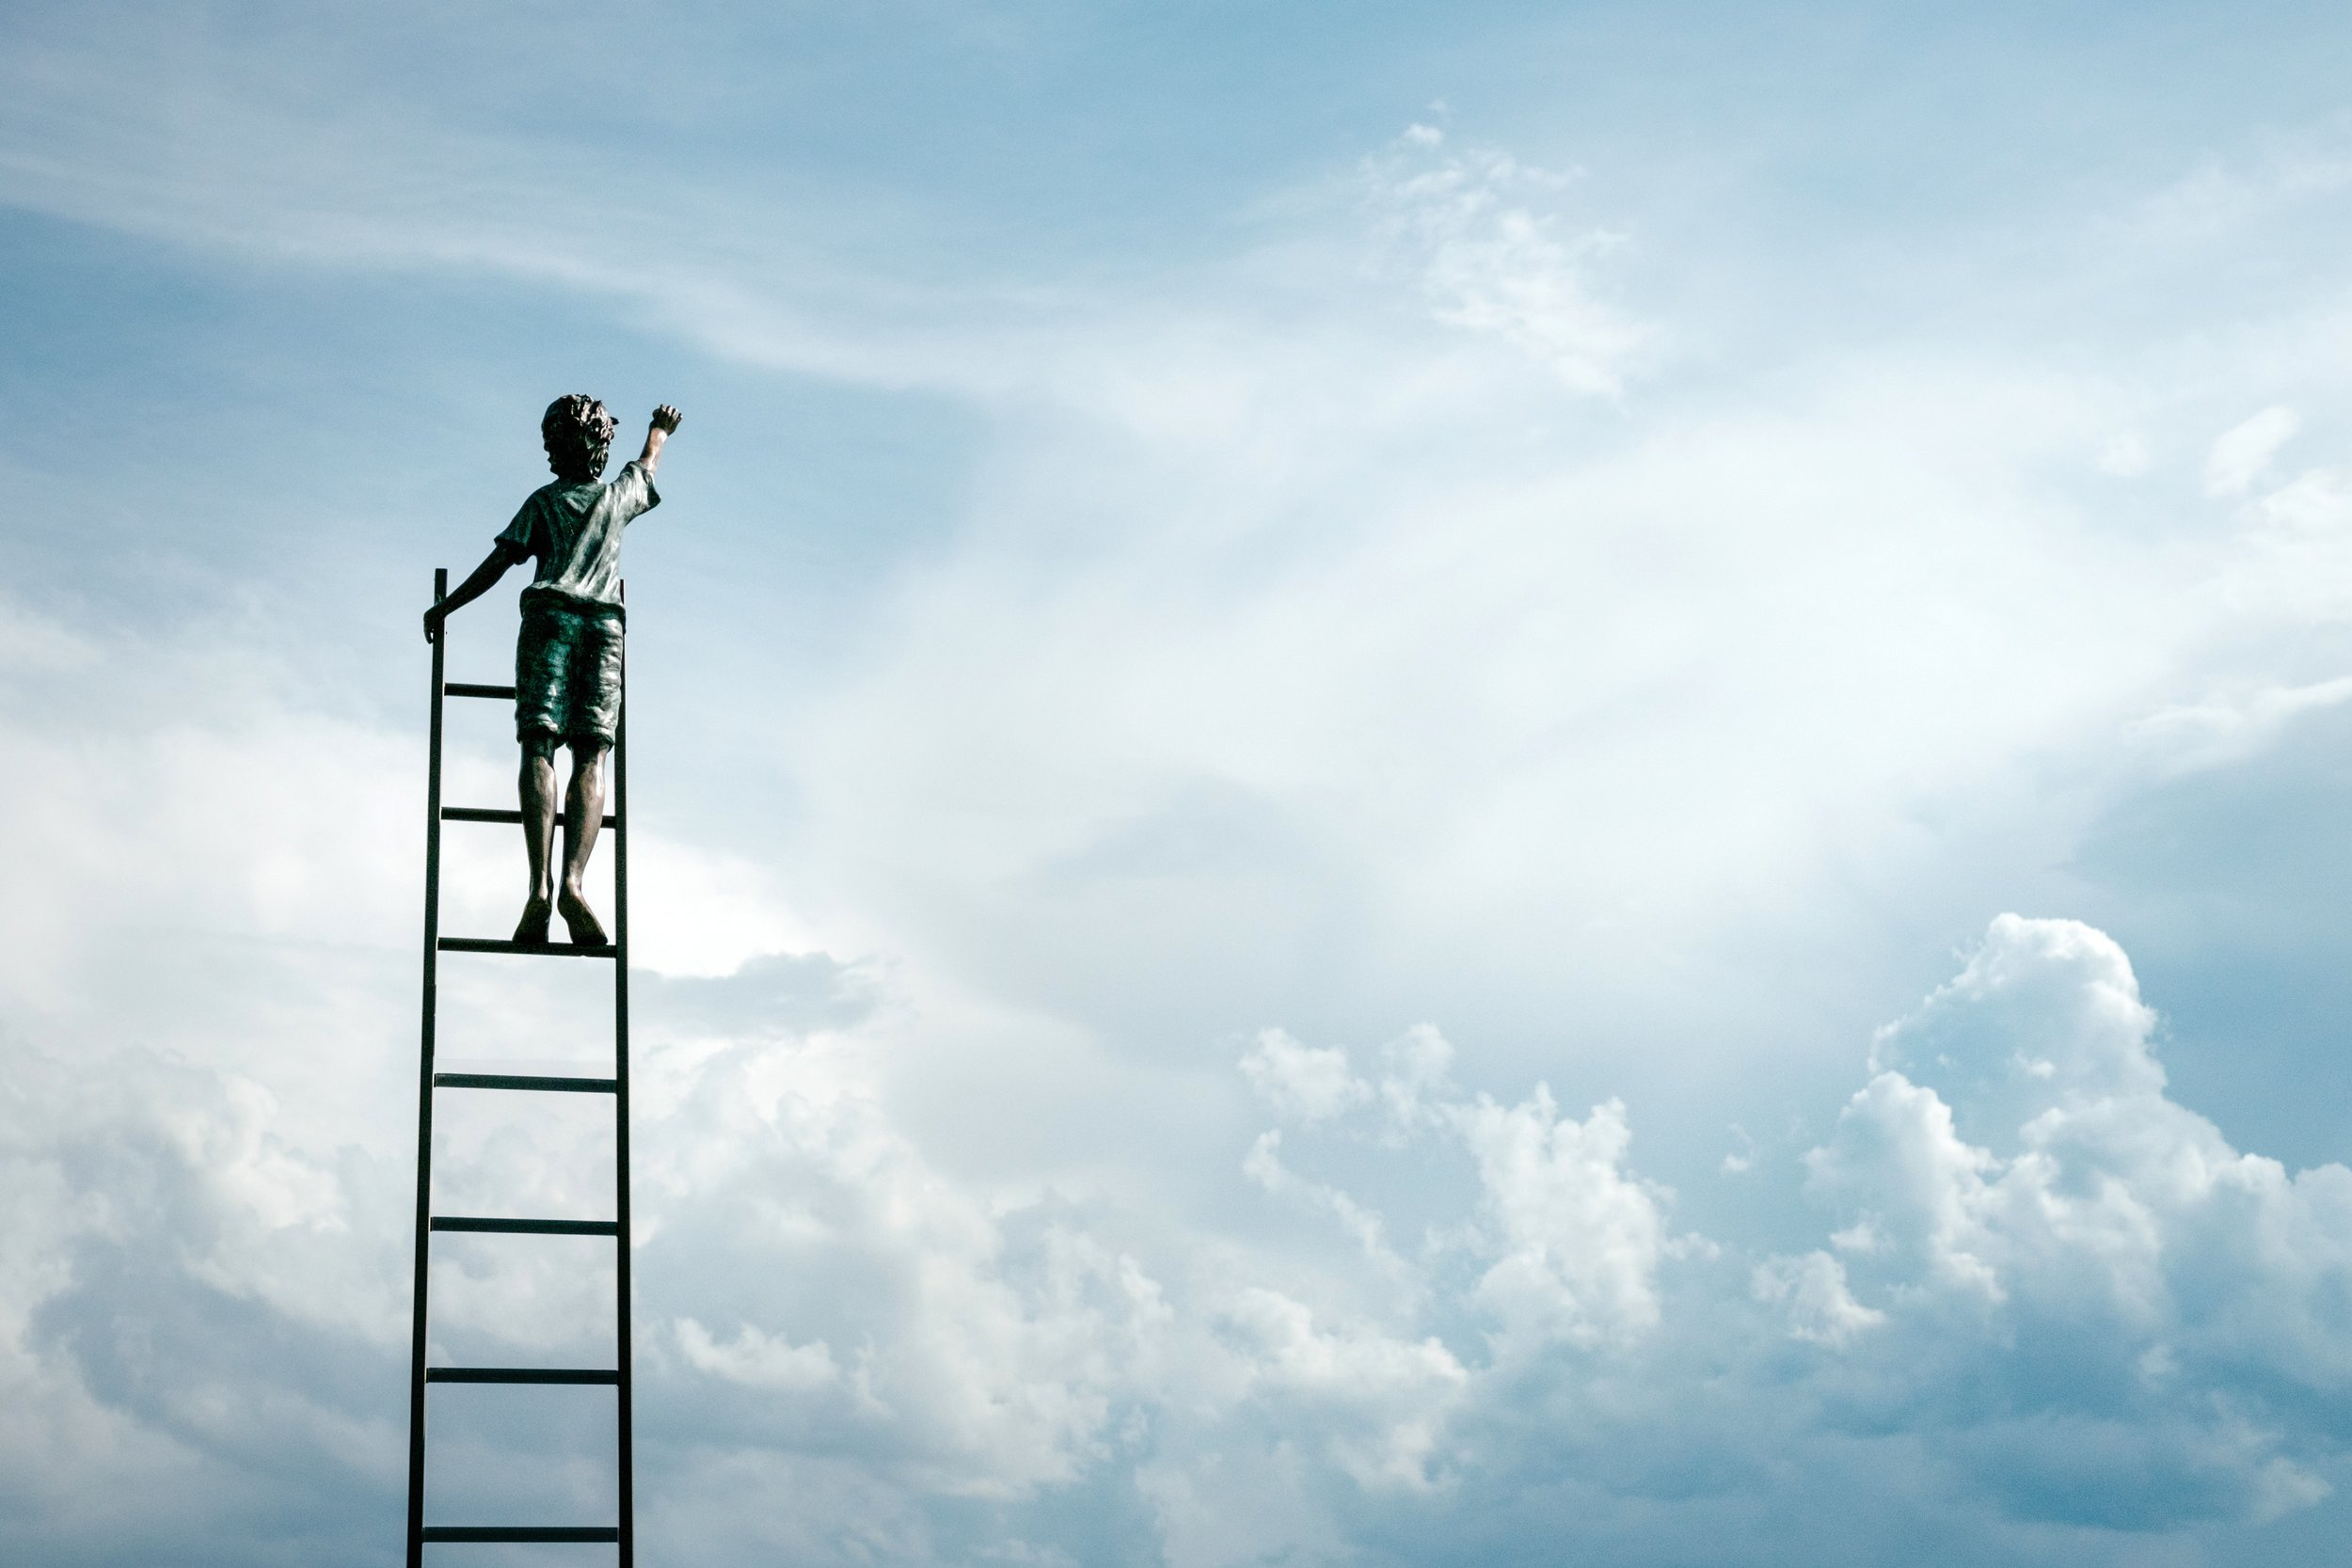 Pipe-dream Plan B or Real Plan B - which have you created?